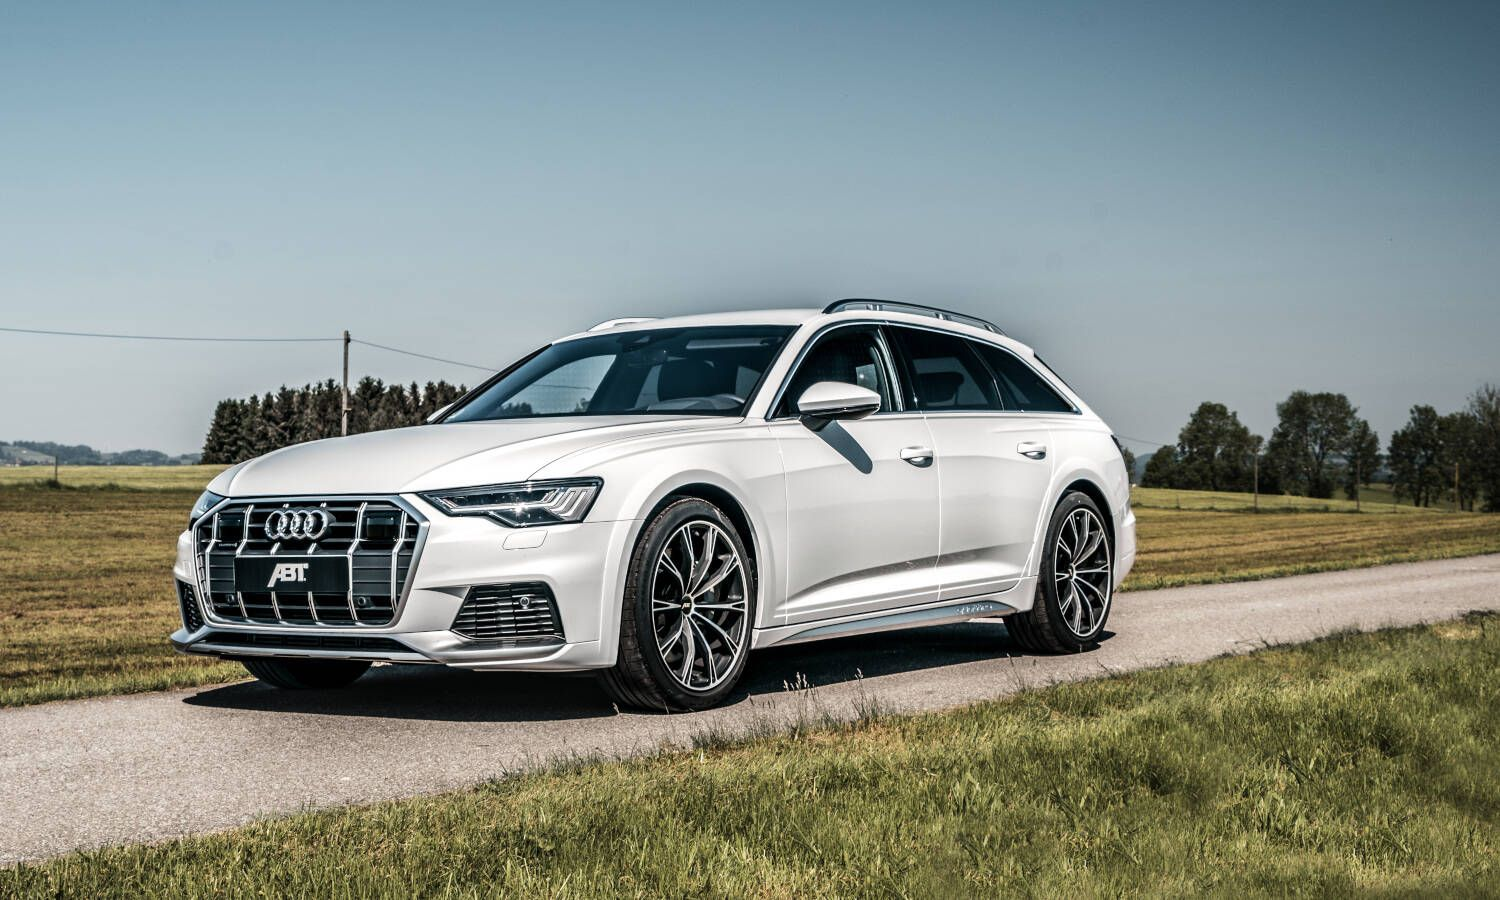 2020 Audi A6 Allroad By Abt Sportsline Top Speed In 2020 Audi A6 Allroad Audi A6 Audi